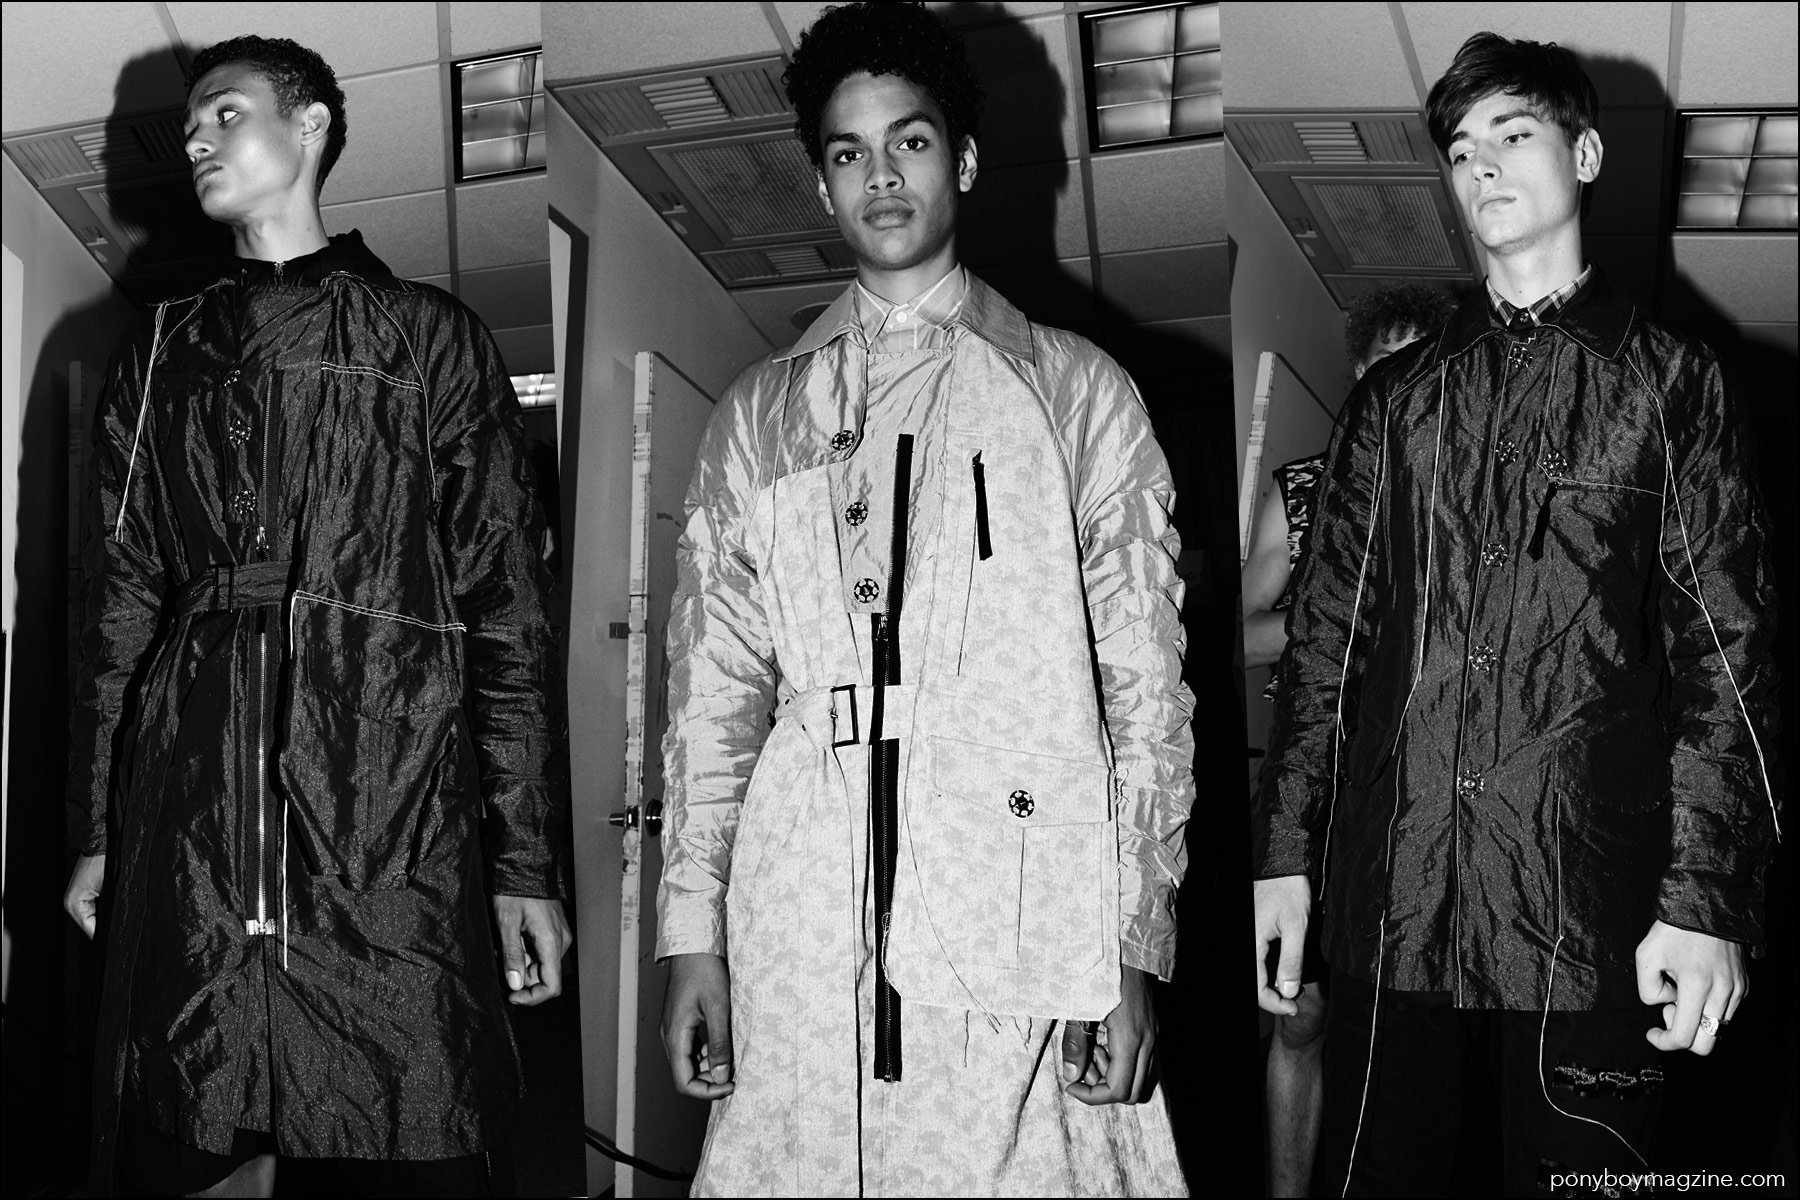 Male models, including Noa Thomas, photographed before walking at the Kenneth Ning Spring/Summer 2017 menswear show. Photography by Alexander Thompson for Ponyboy magazine New York.